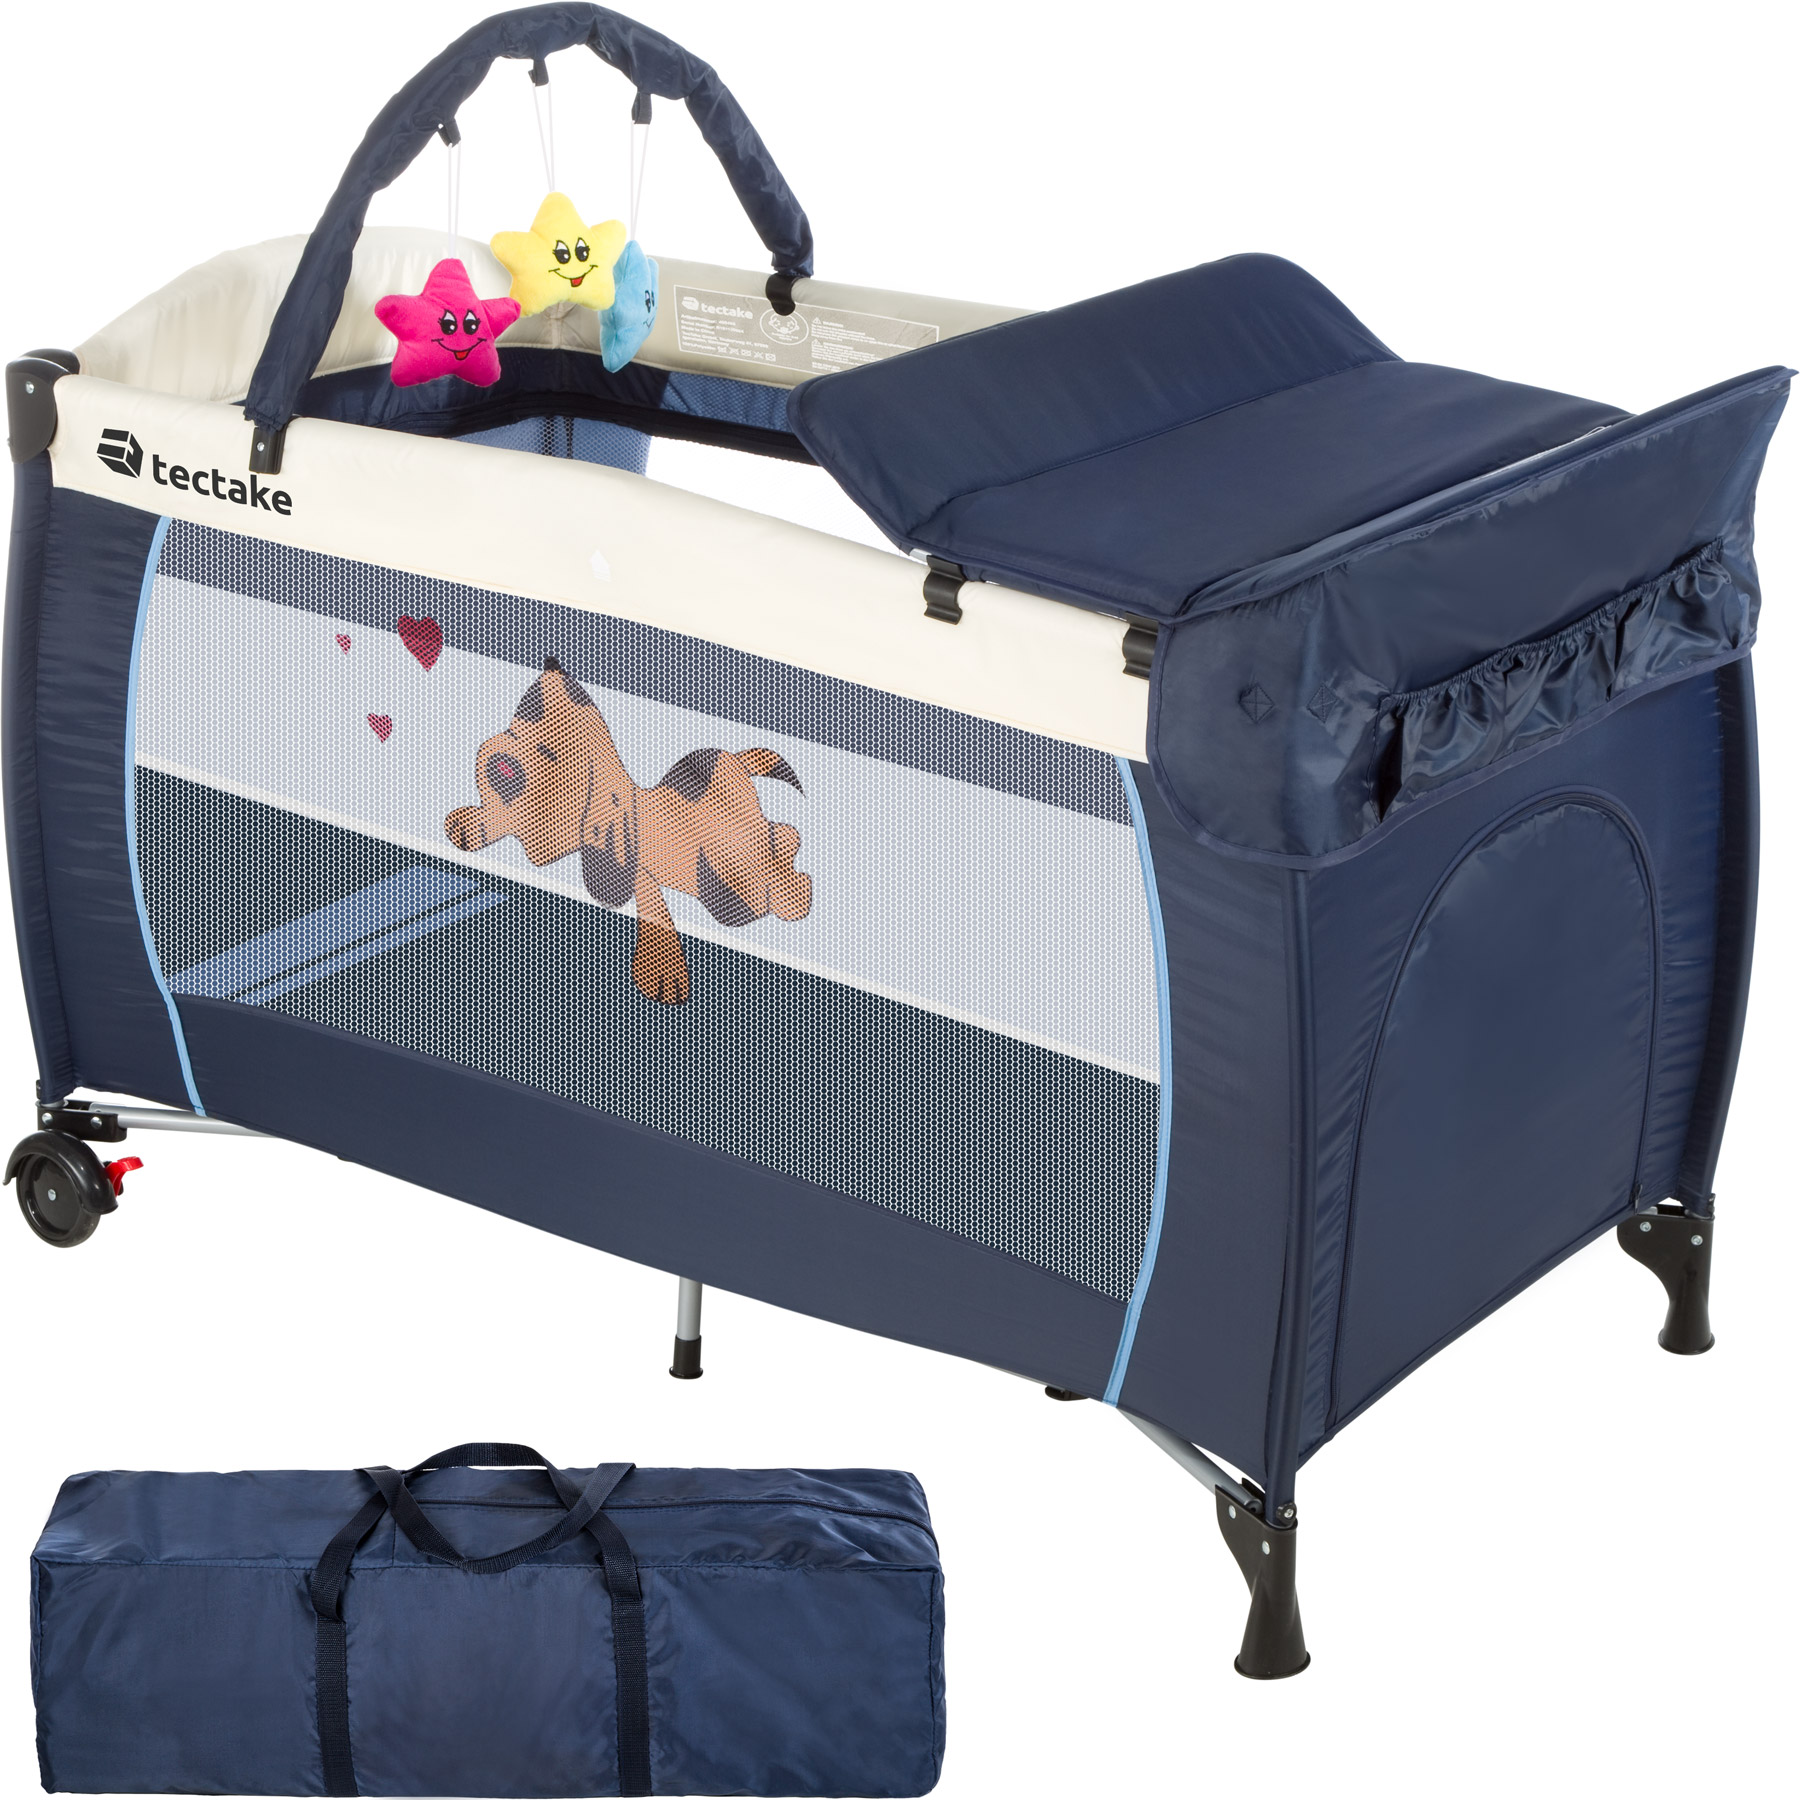 babybett kinder baby reisebett kinderreisebett einlage navy blau ebay. Black Bedroom Furniture Sets. Home Design Ideas